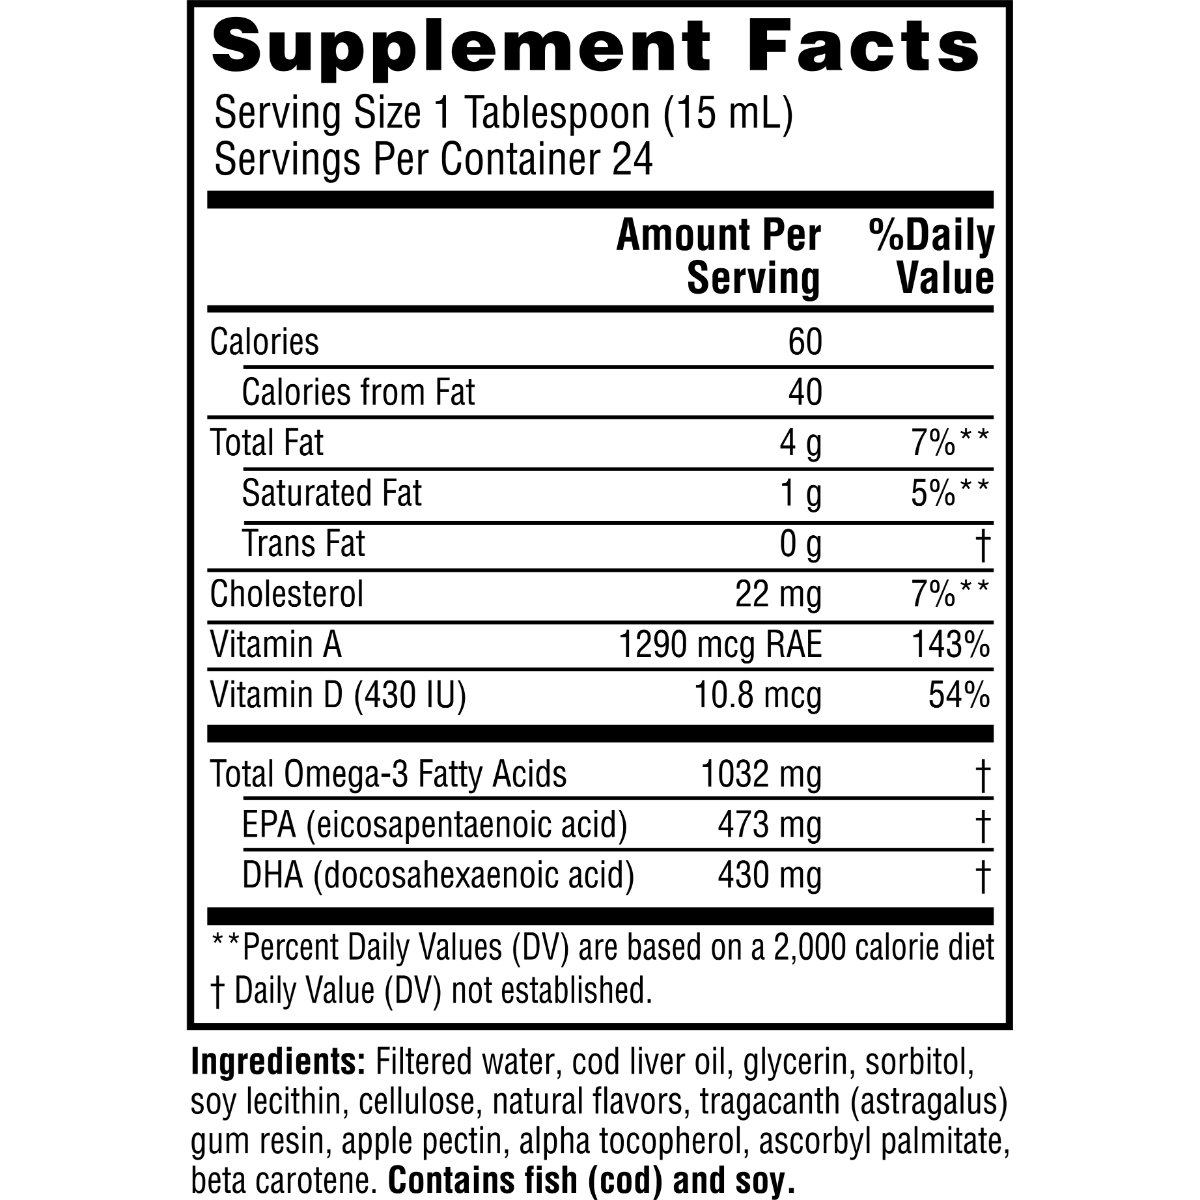 Supplement facts for Twinlab Emulsified Cod Liver Oil